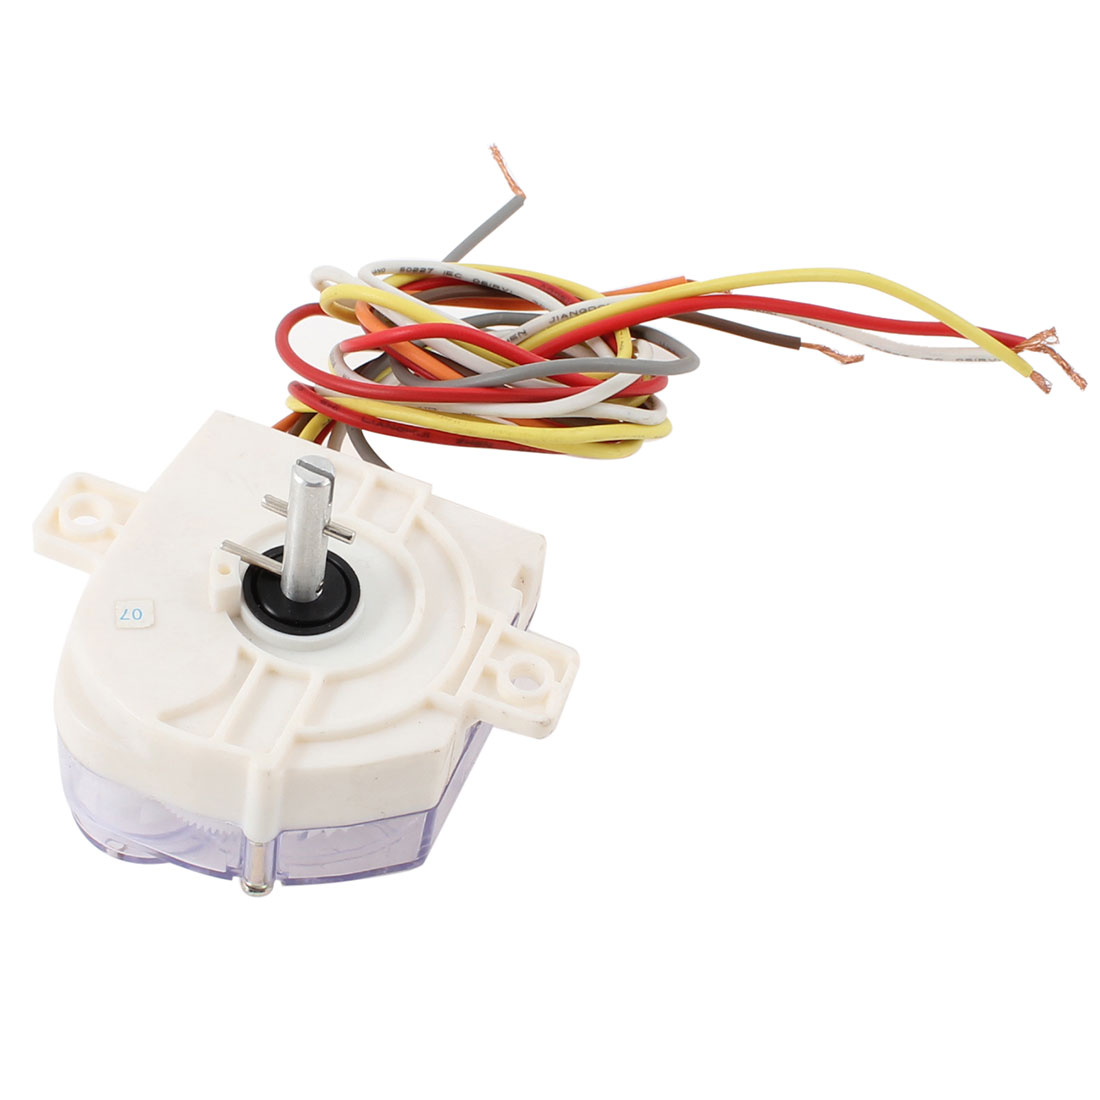 AC 250V 3A 6 Wires White Controller Timer for Washing Machine